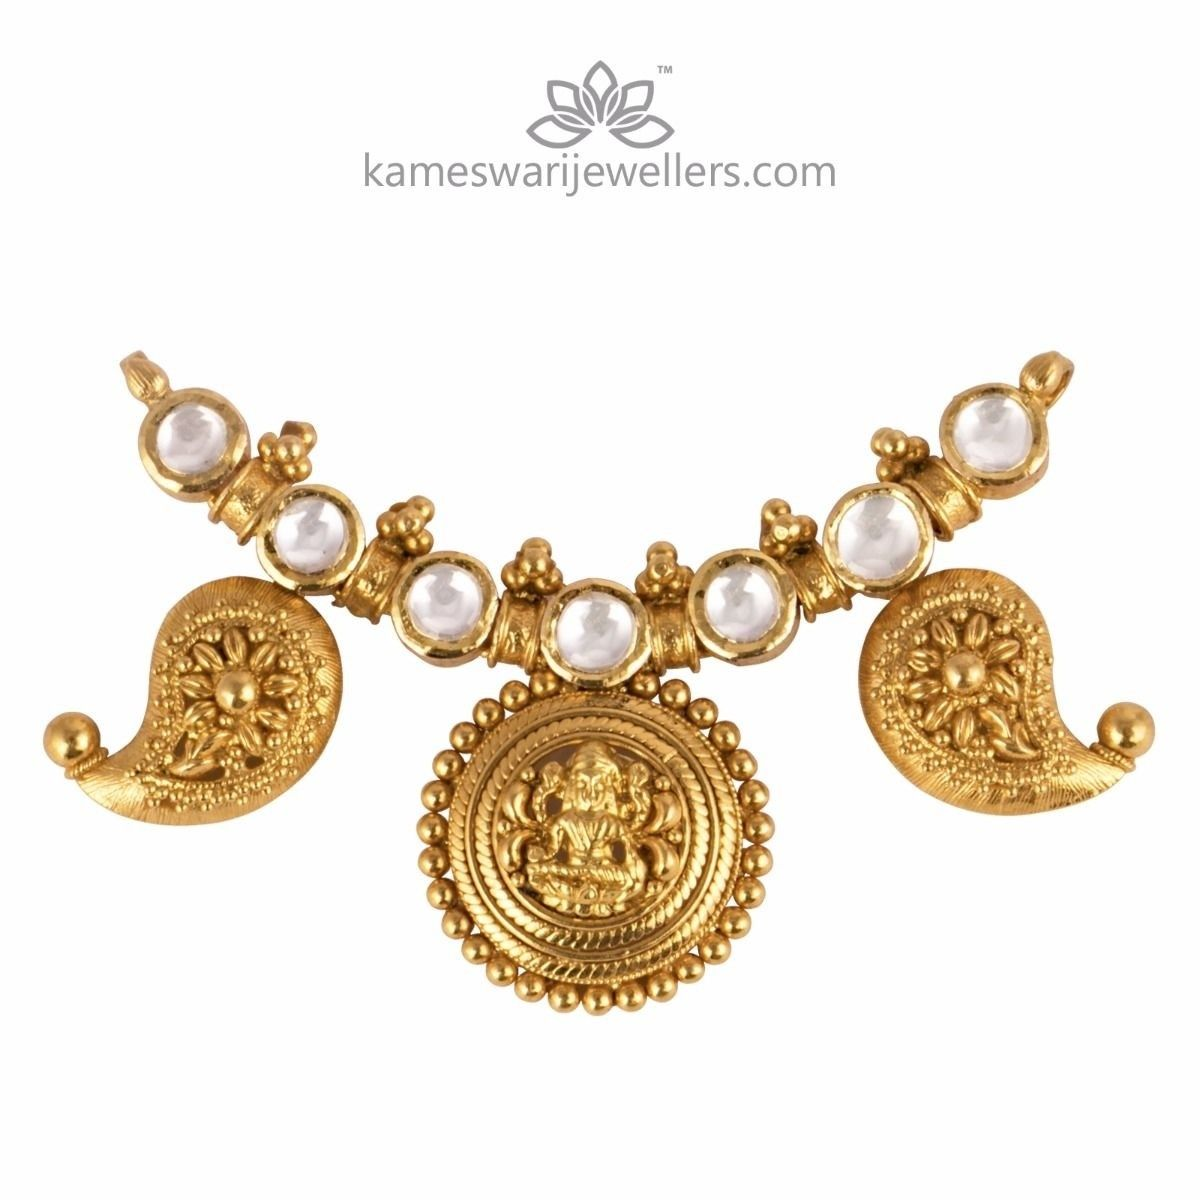 Pin by anjali verma on jewellery pinterest india jewelry jewel